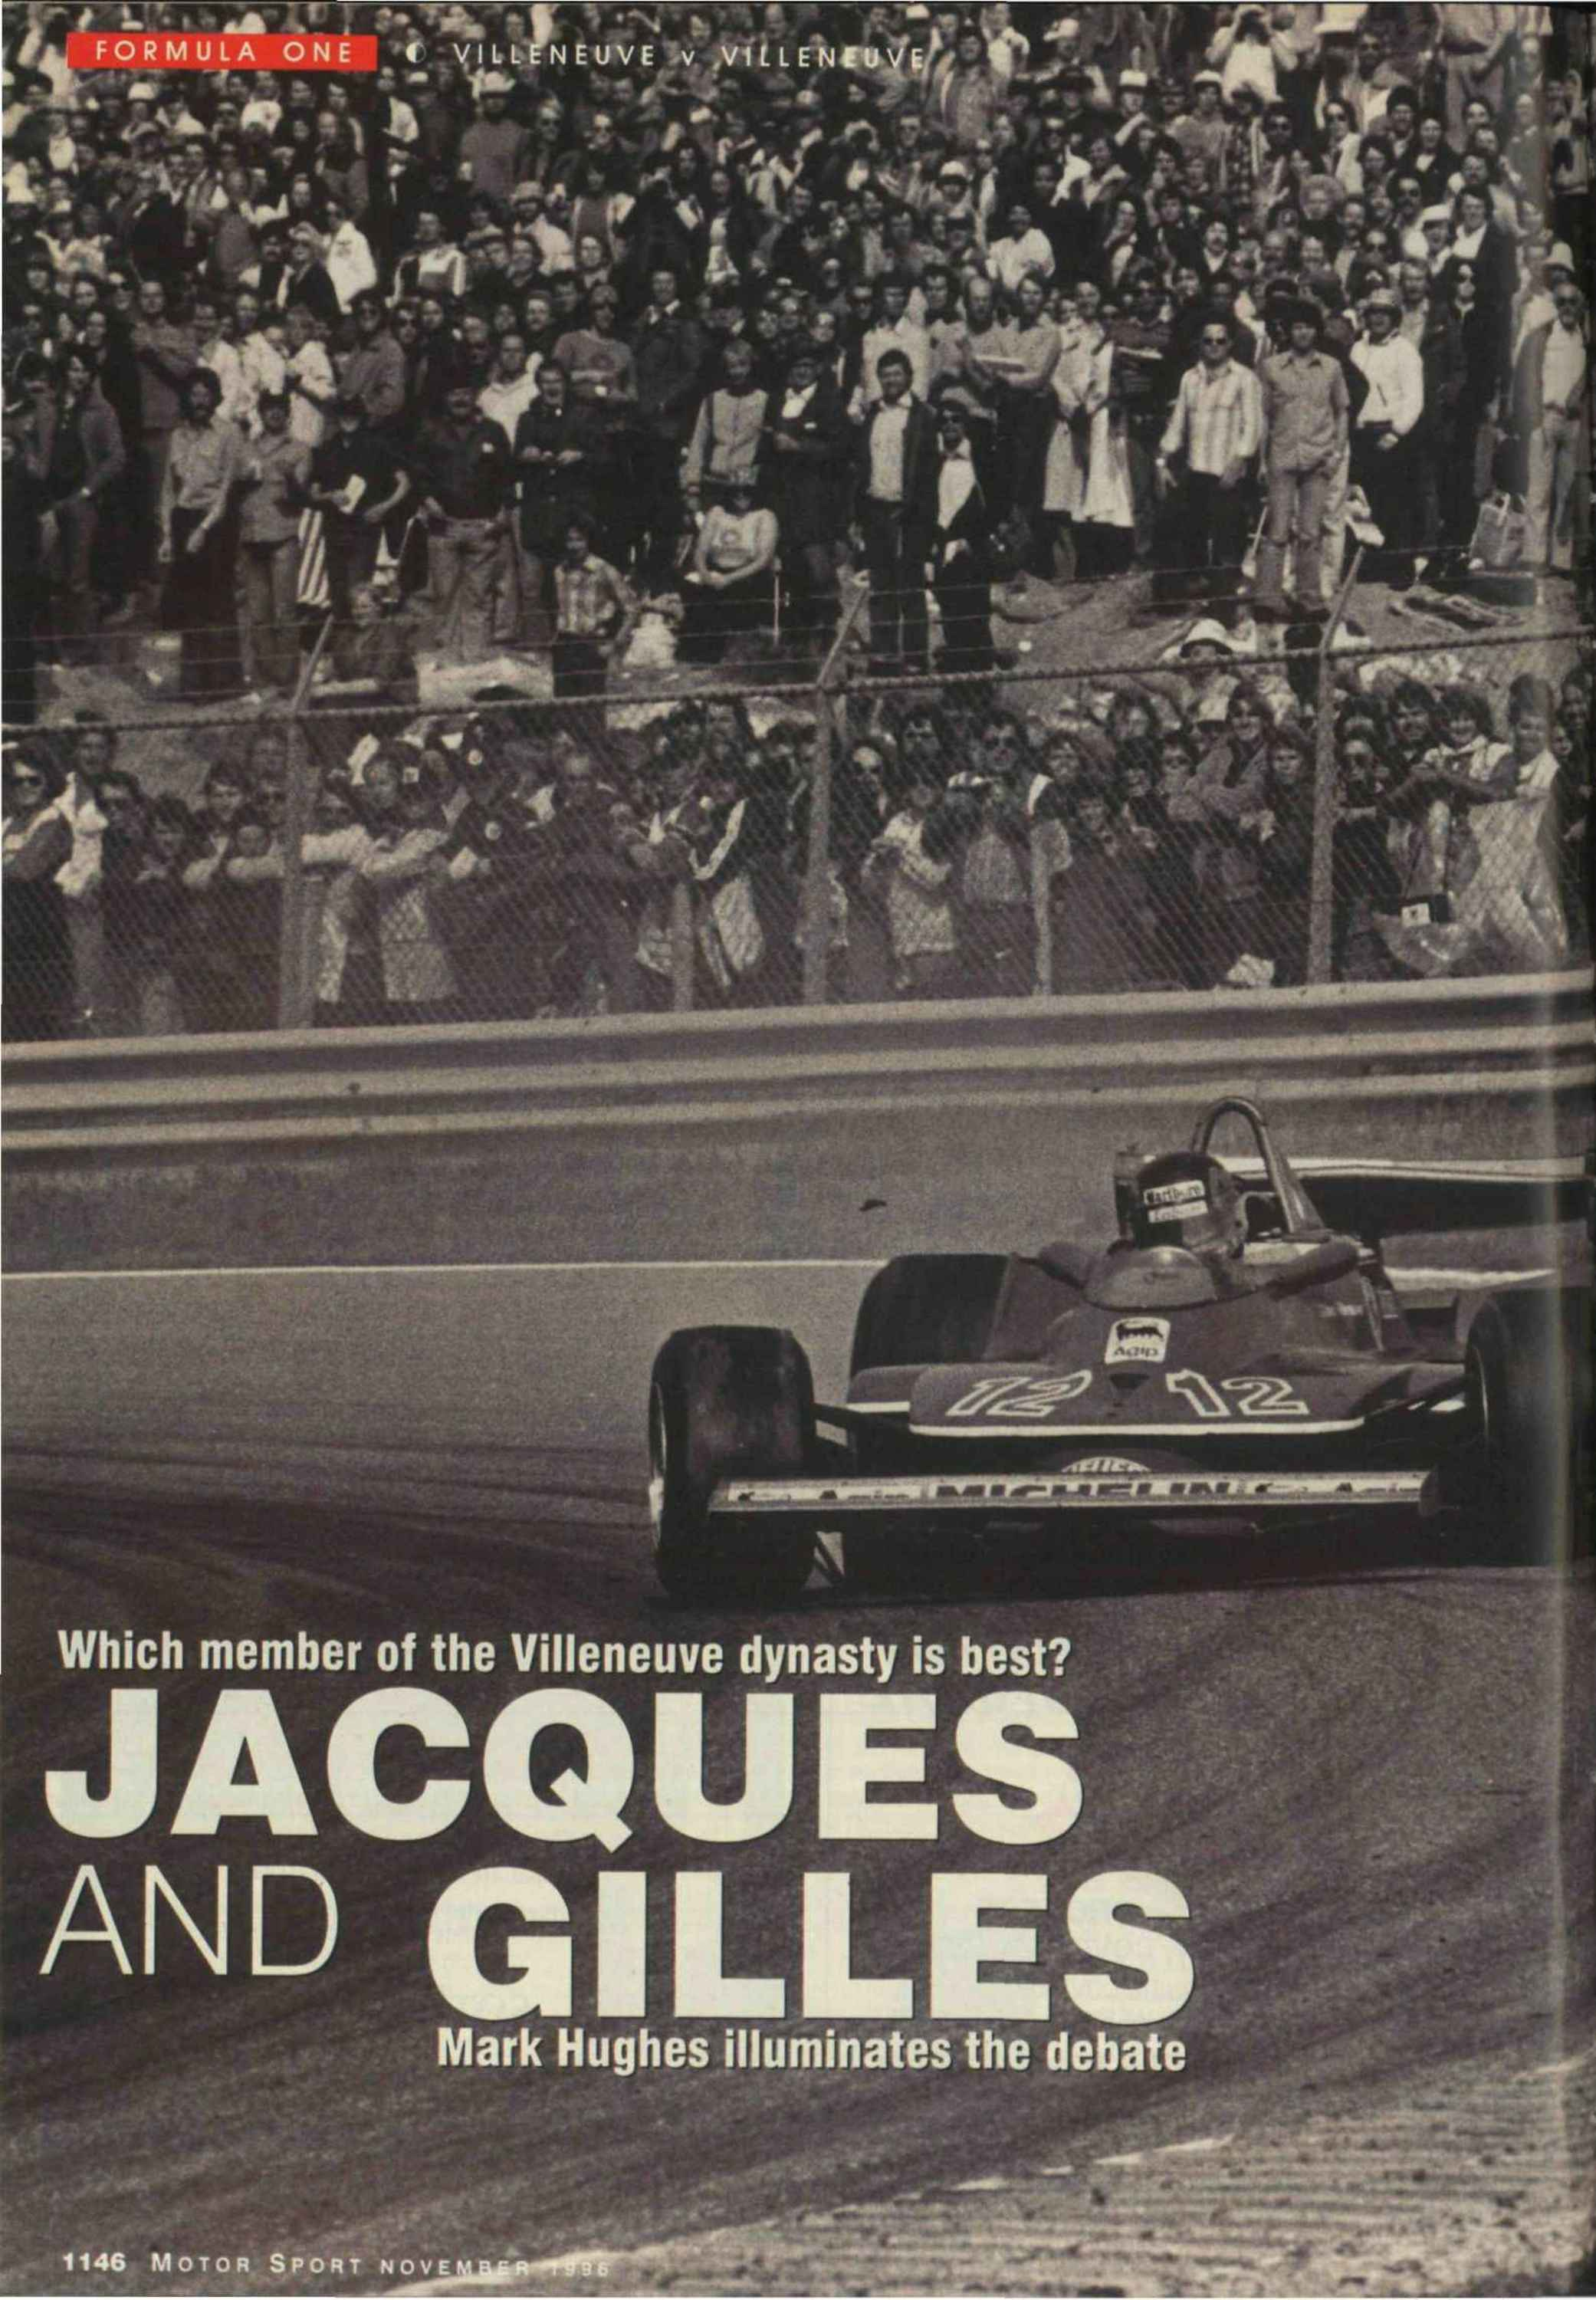 jacques and gilles image